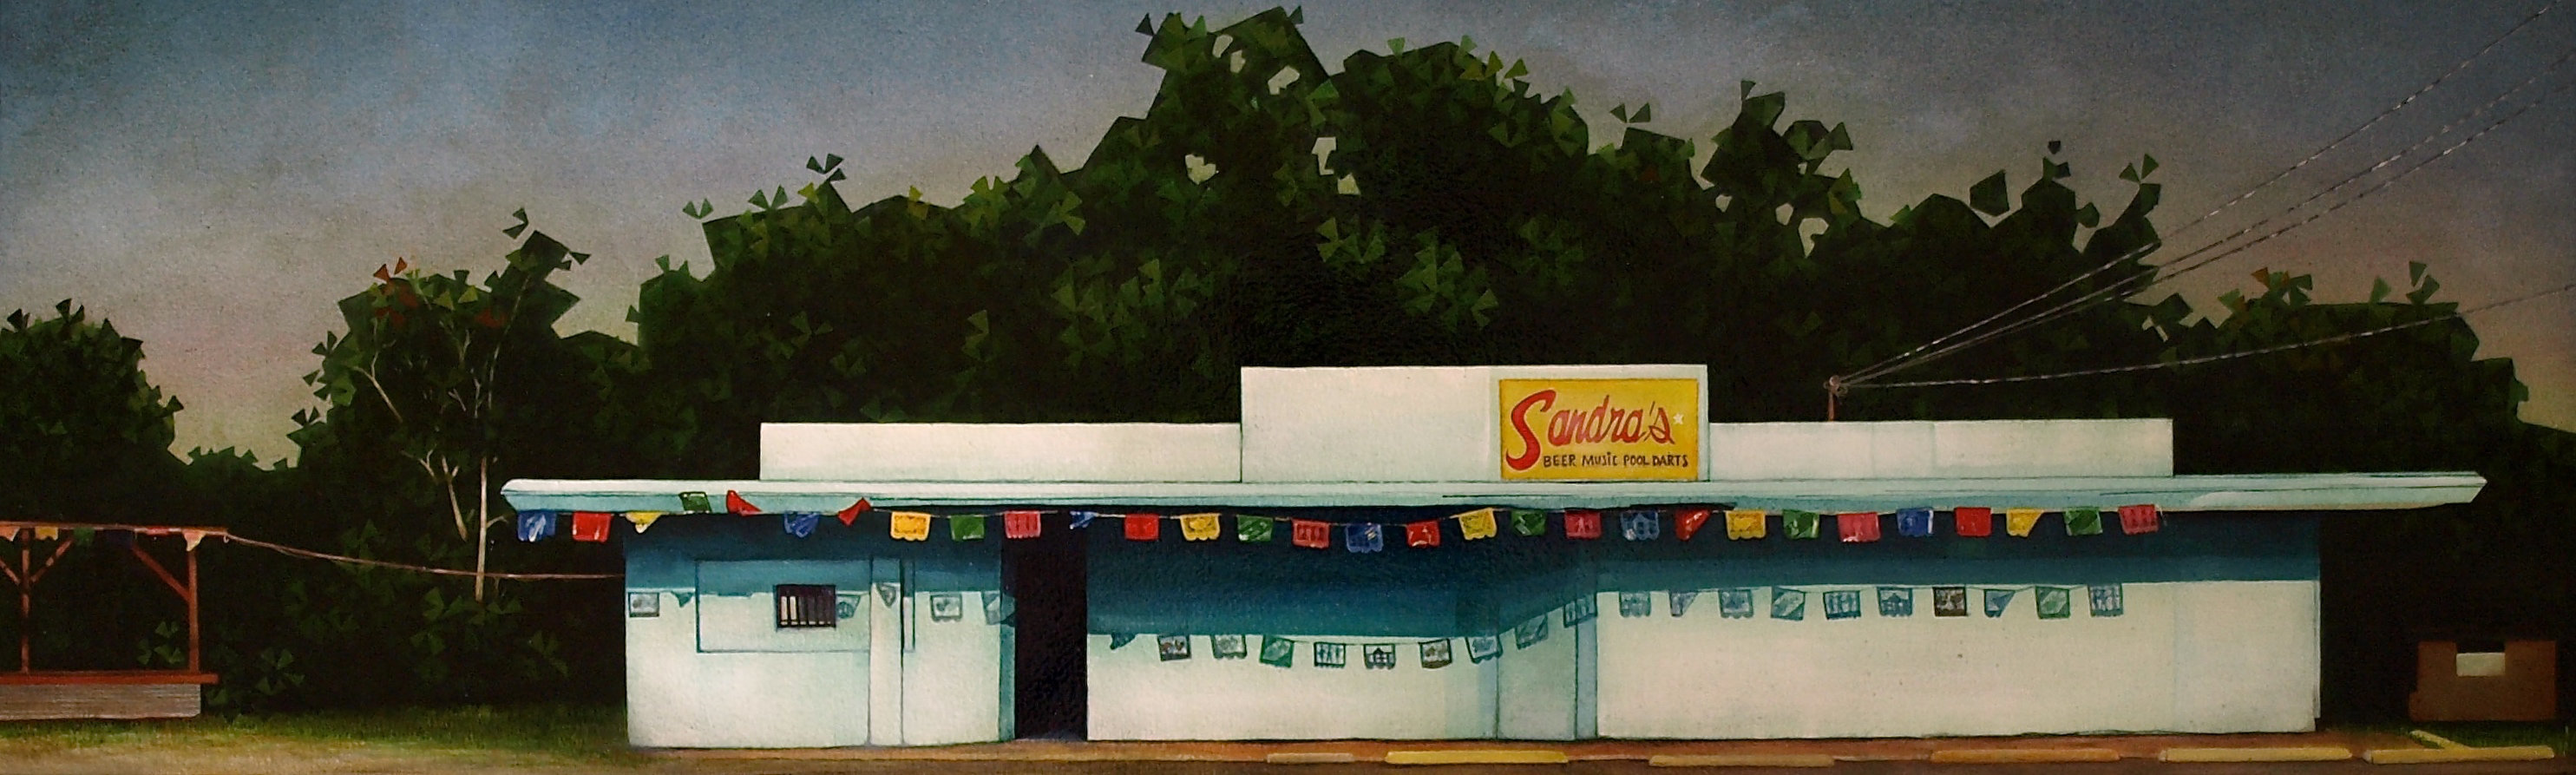 """Sandra's, 2014, acrylic and oil on paper, 9 x 28"""""""